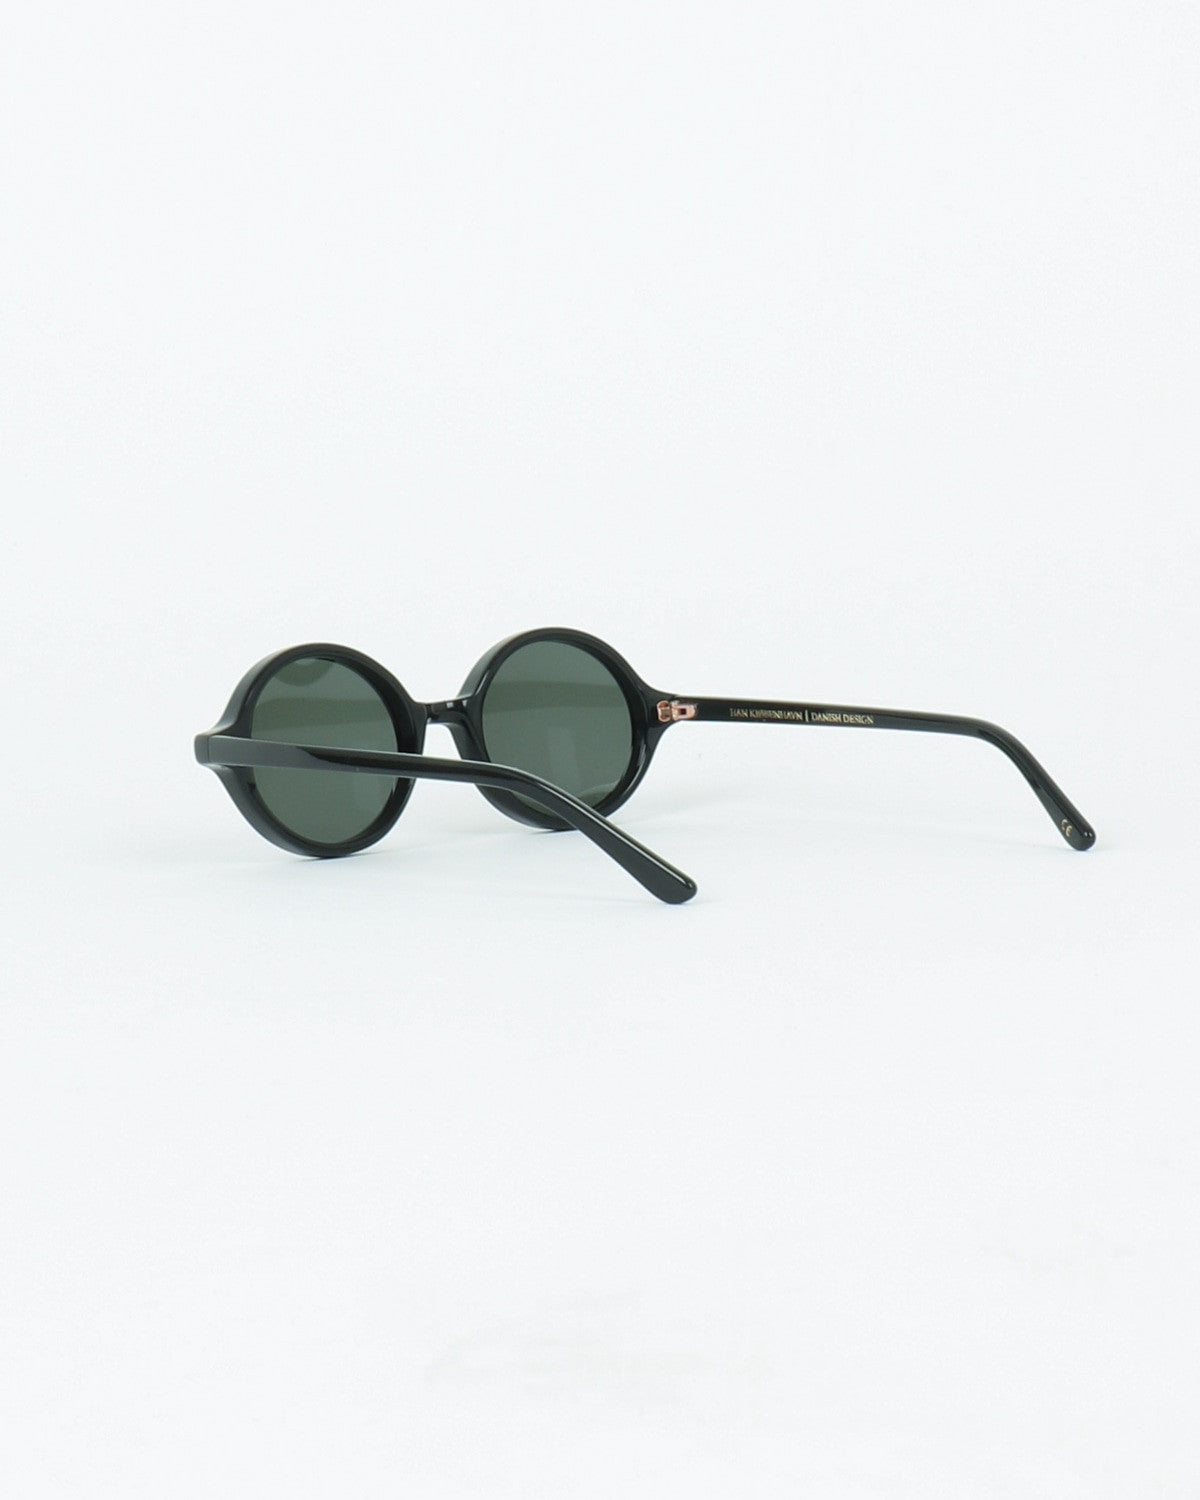 han kjobenhavn_doc_sunglasses_black_view_2_4